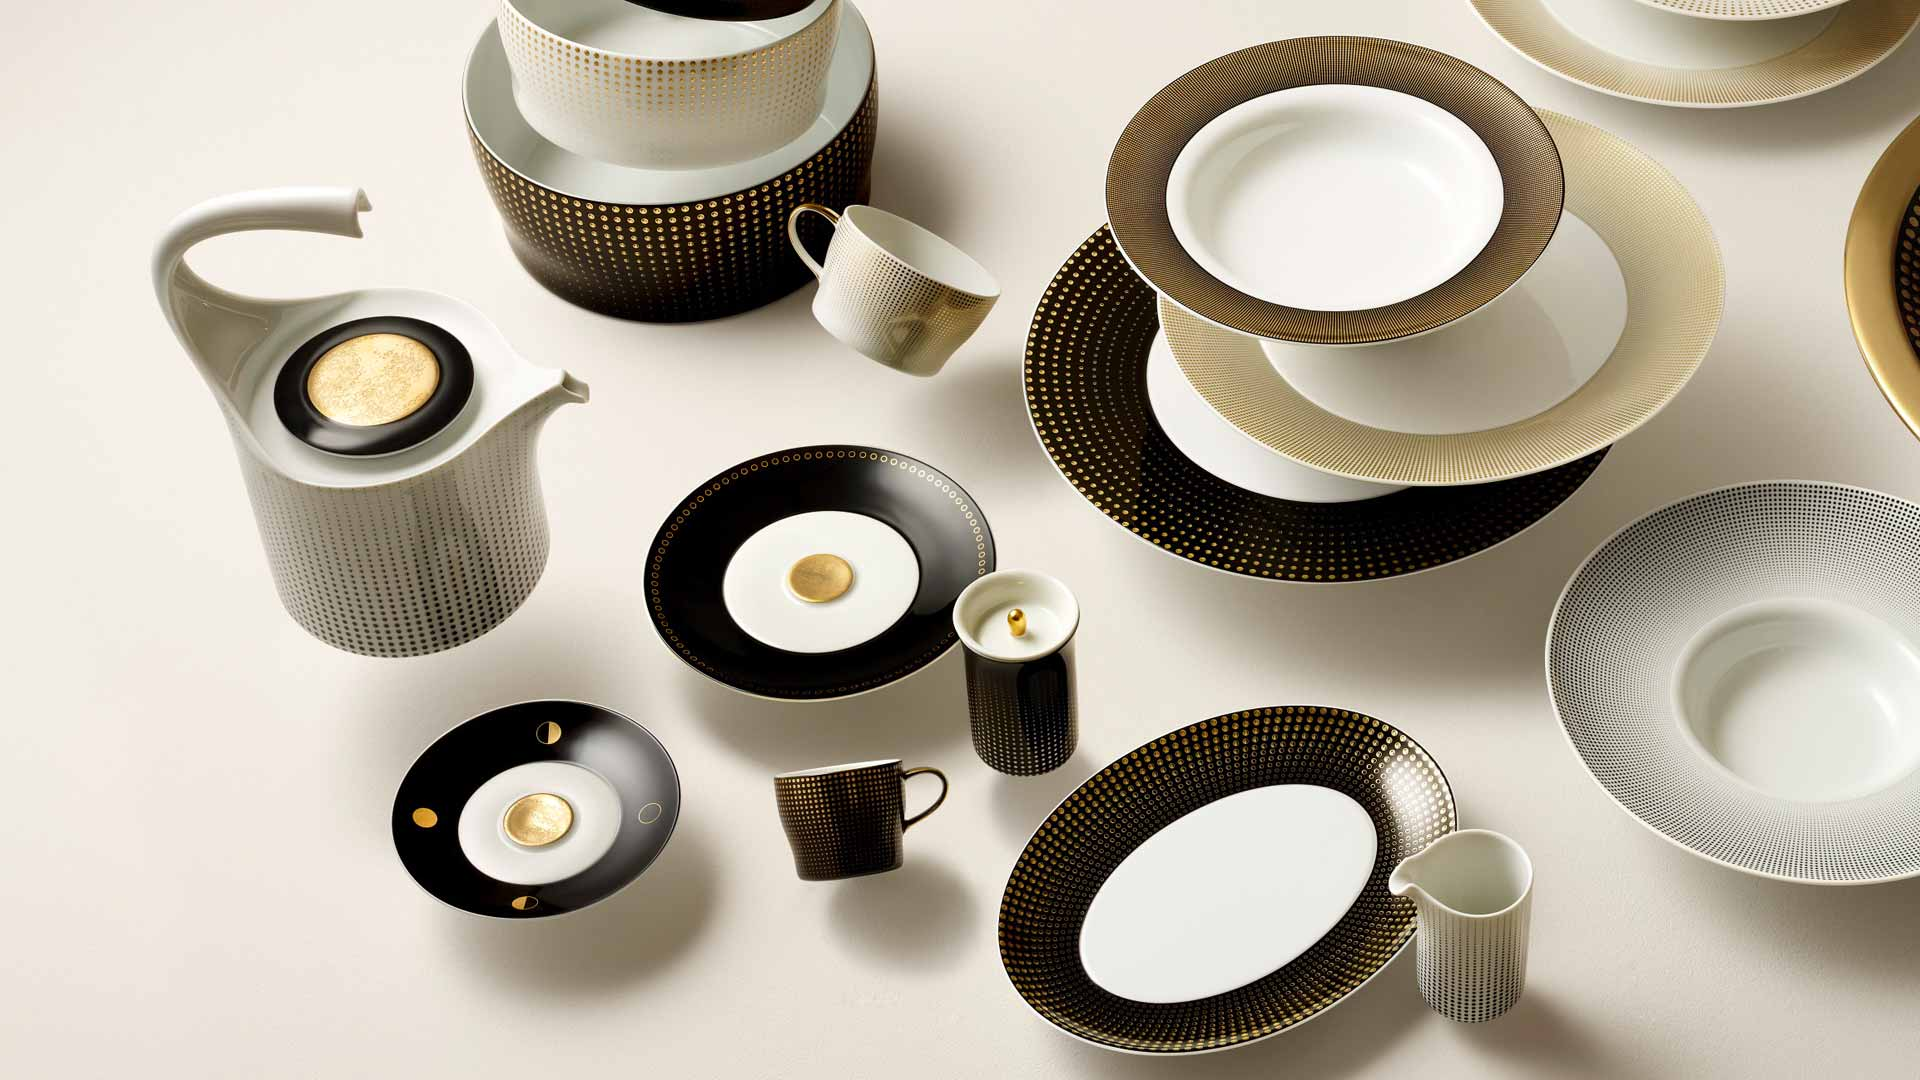 Design Favourites In Black Furstenberg Porcelain Manufactory